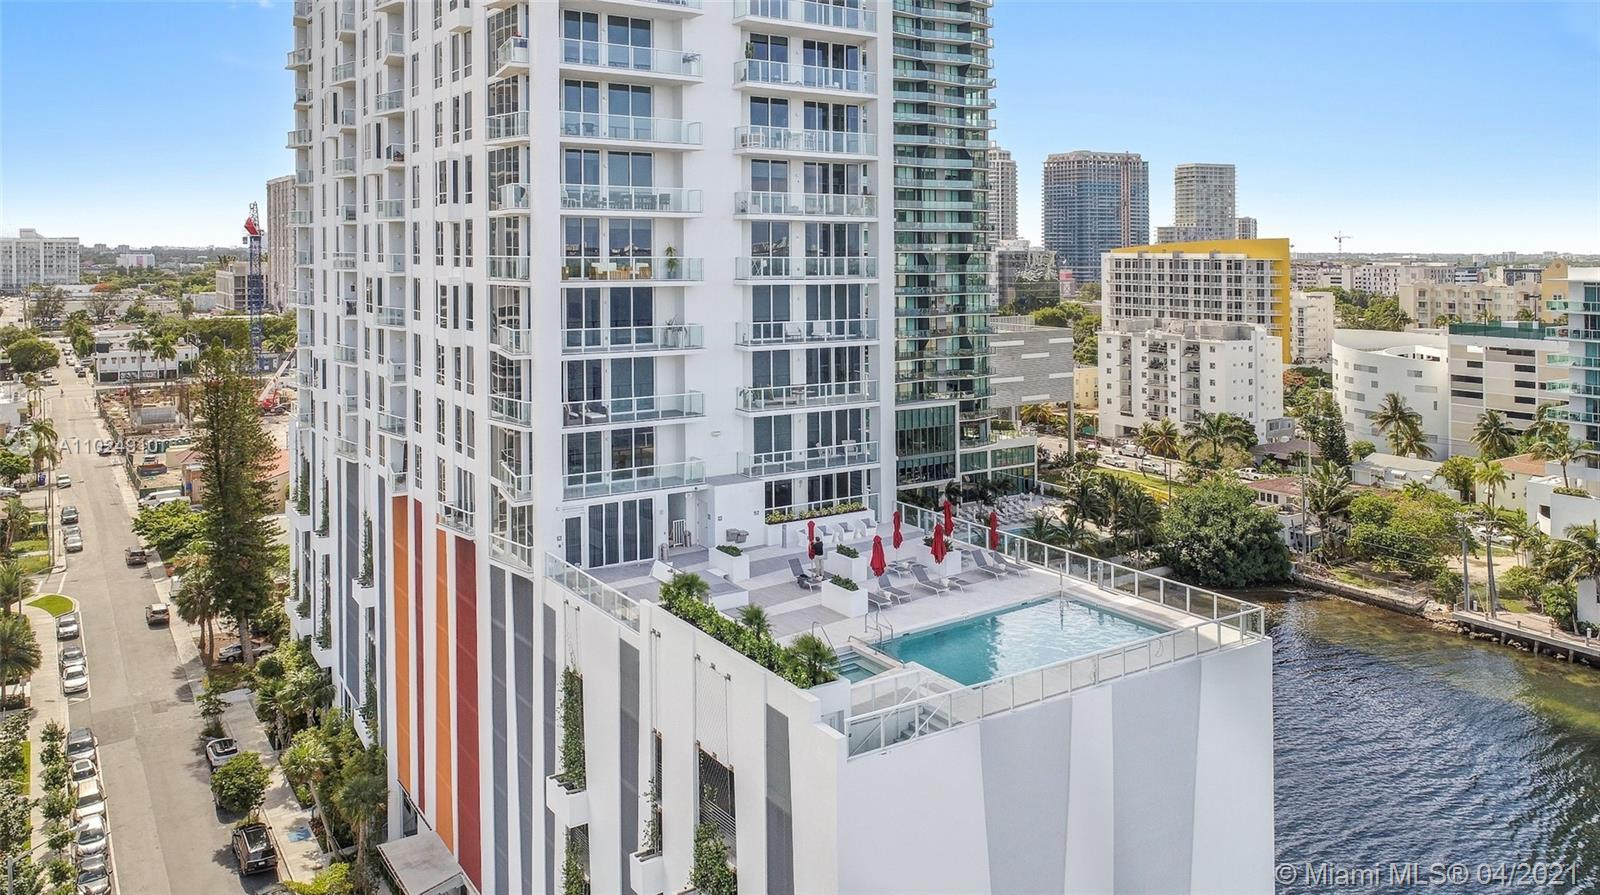 GORGEOUS 1BED/1BATH UNIT WITH HIGH END LUXURY FINISHES SUCH AS BOSH APPLIANCES, ROLLER SHADES, MARBL